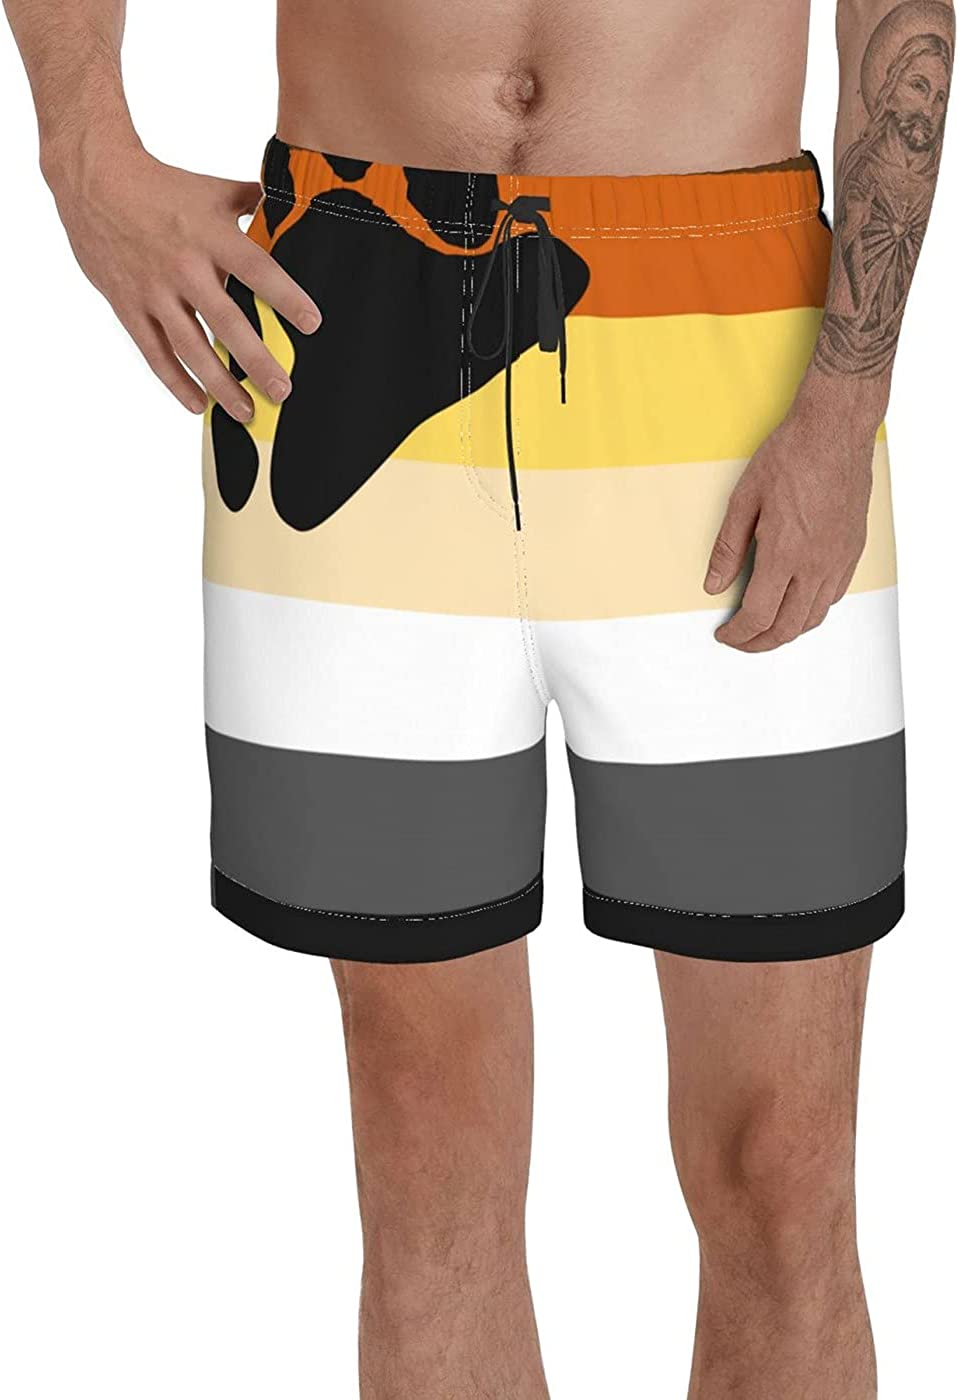 Count Bear Pride Flag Men's 3D Printed Funny Summer Quick Dry Swim Short Board Shorts with